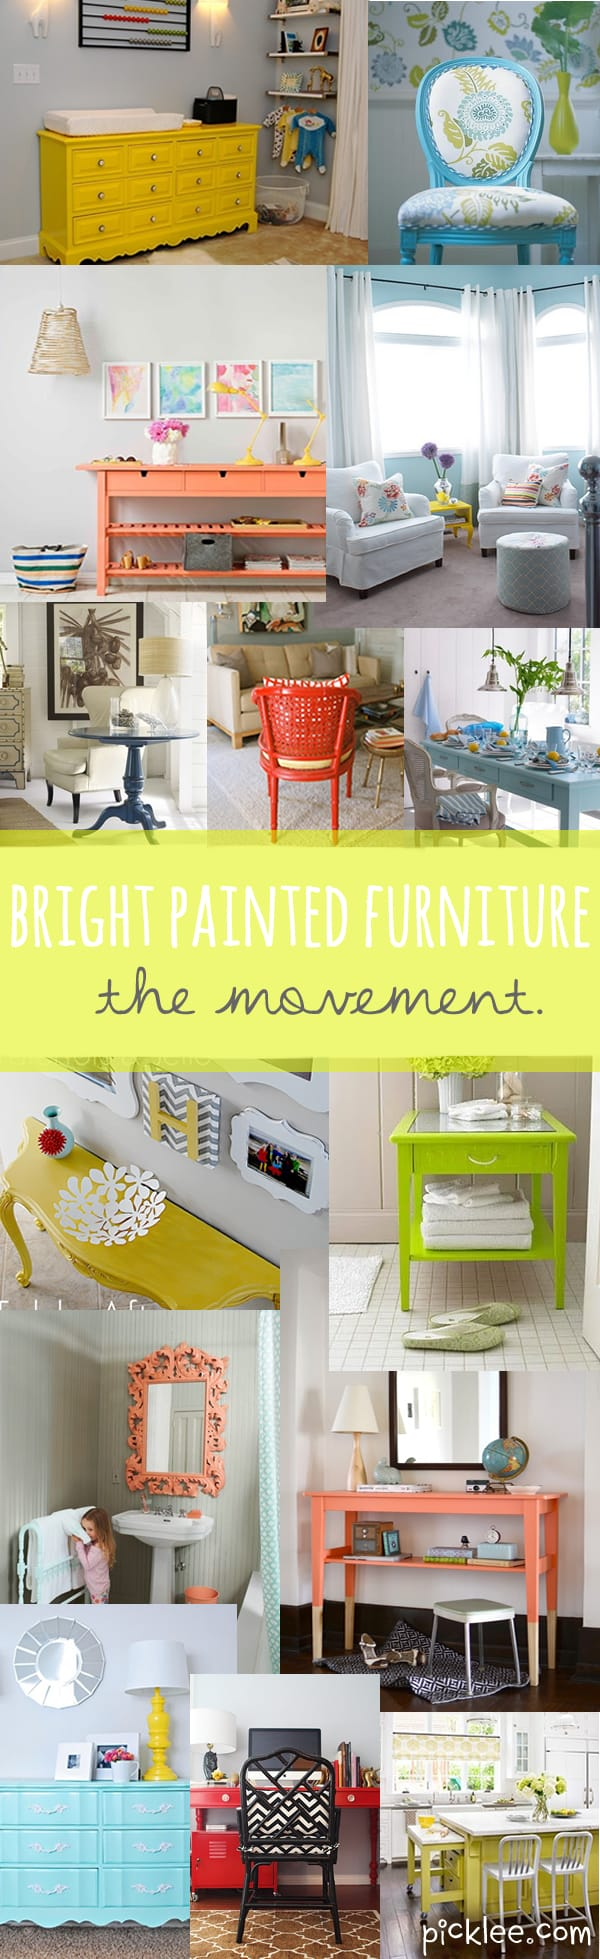 The Bright Painted Furniture Movement {Inspiration}